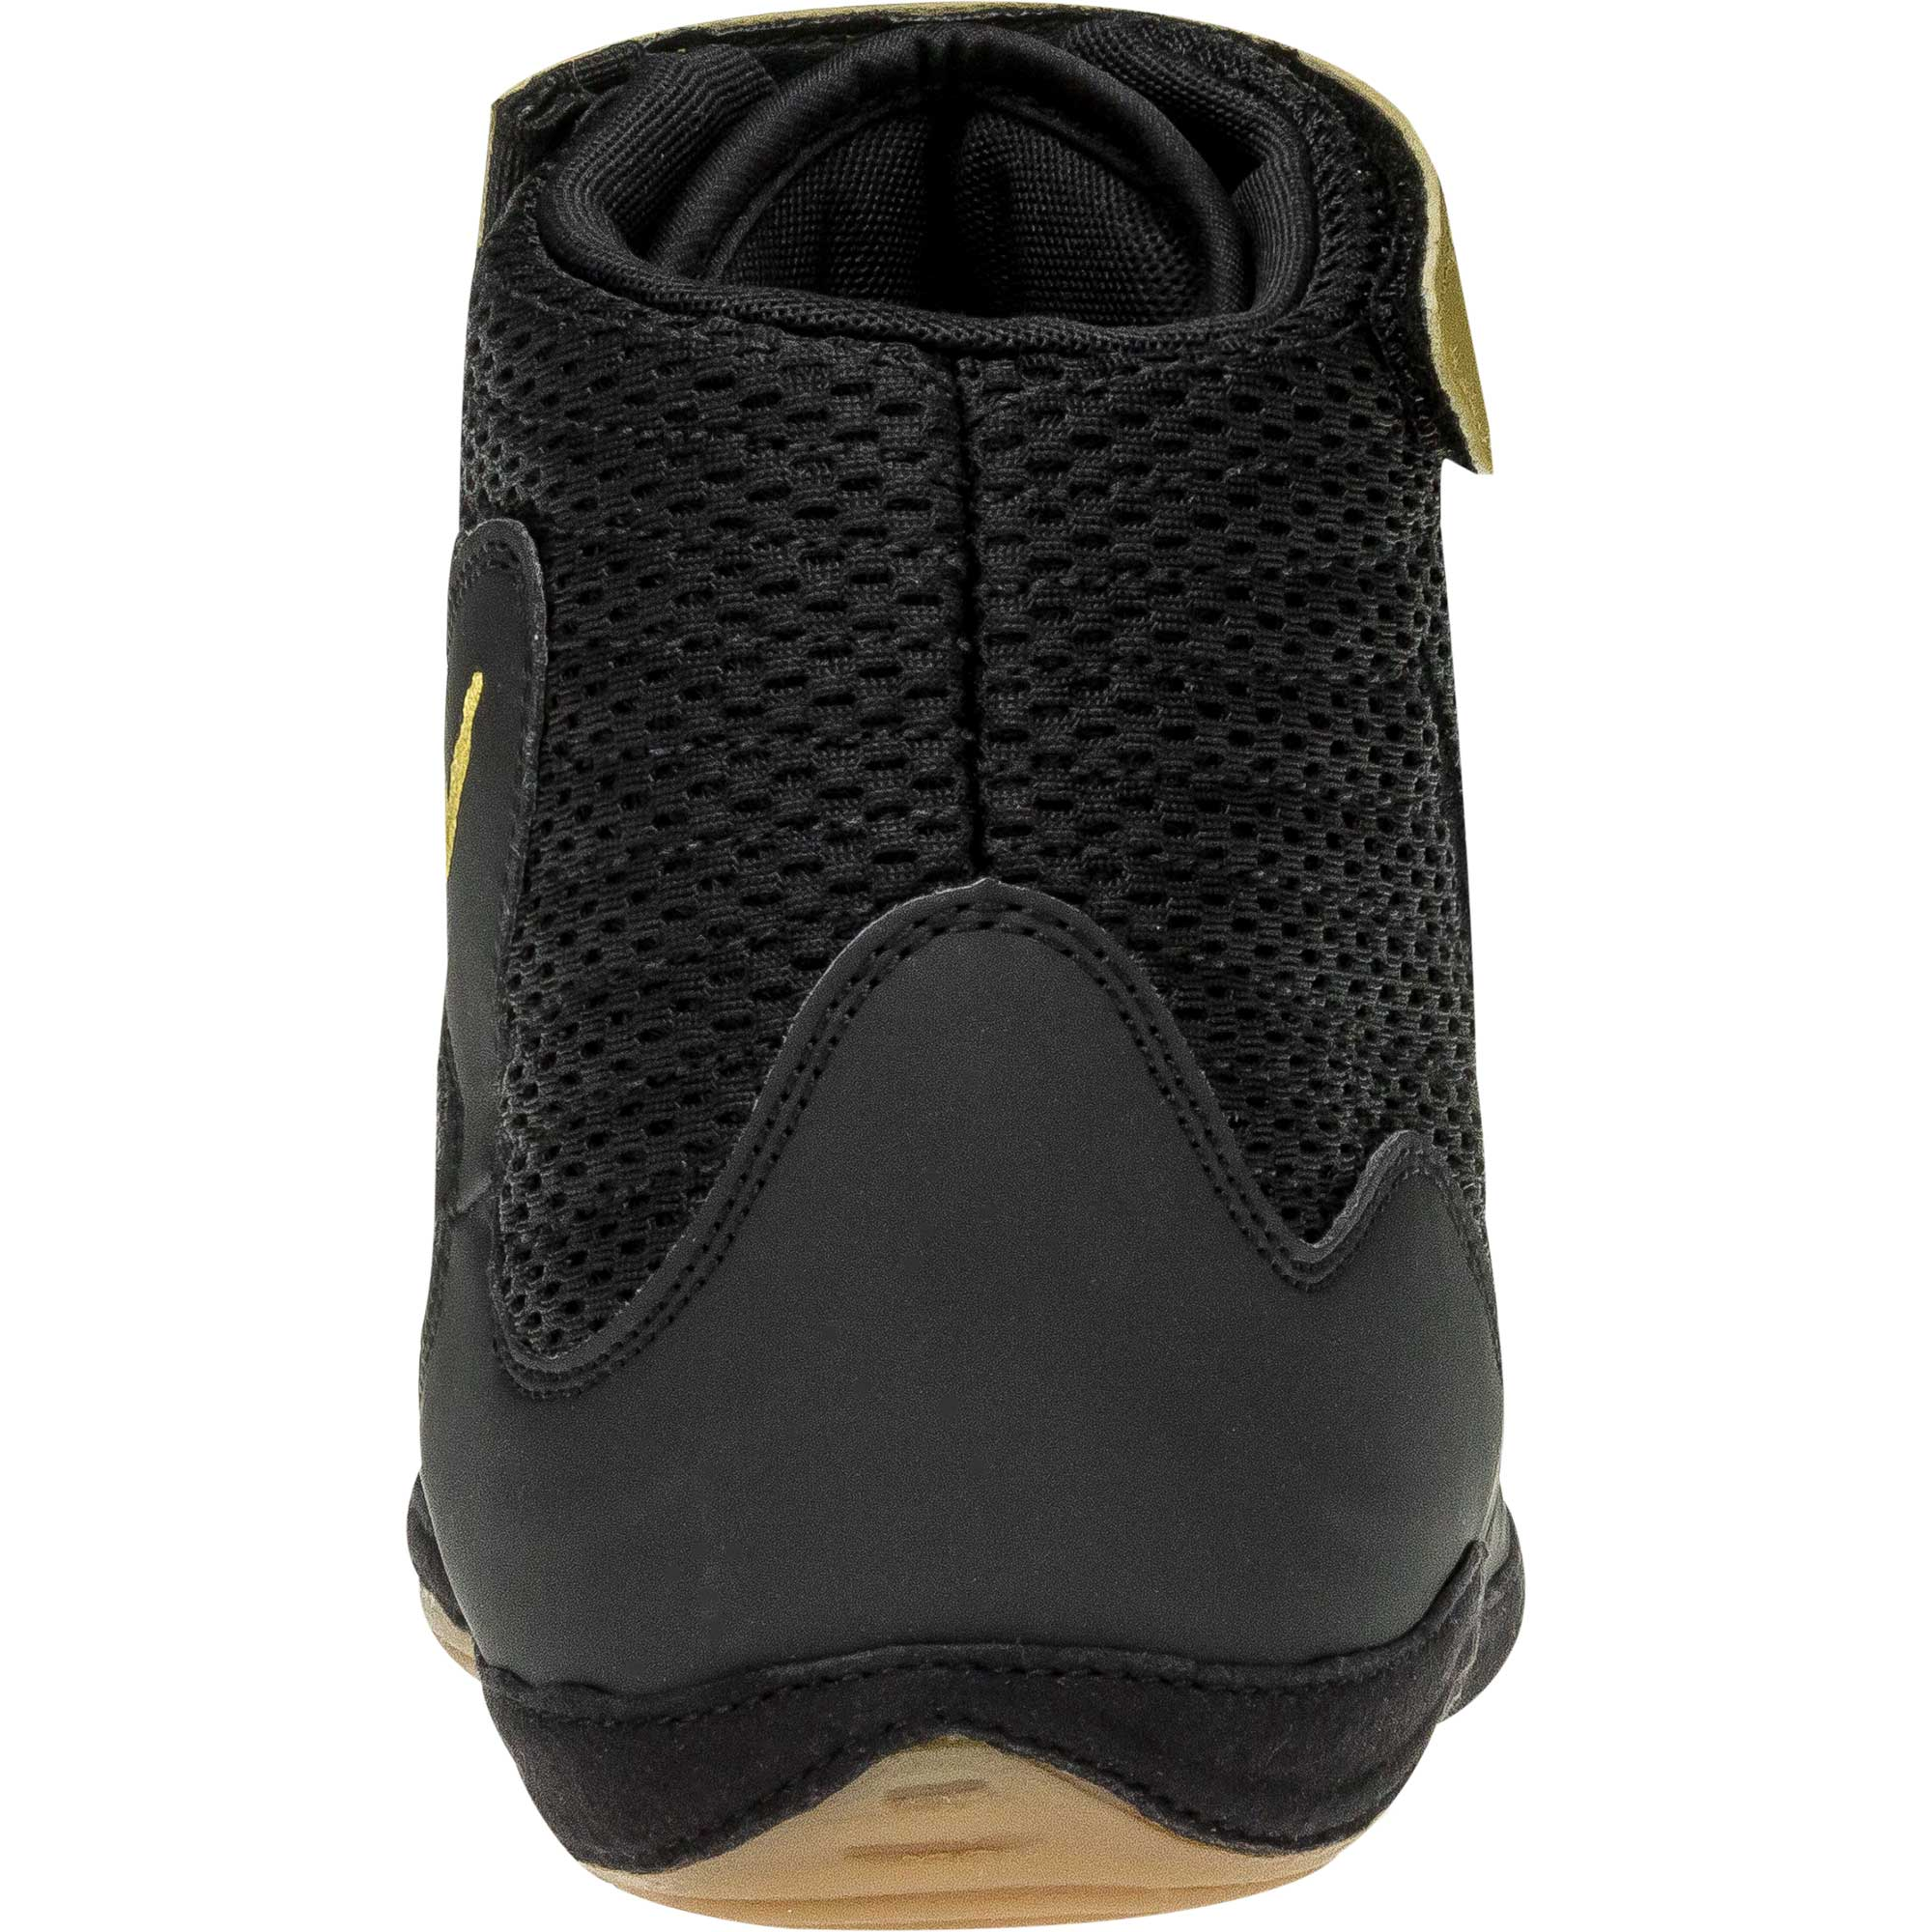 ... frontNike Inflict 3 Black Old Gold Black ... f4d7acaa6b993